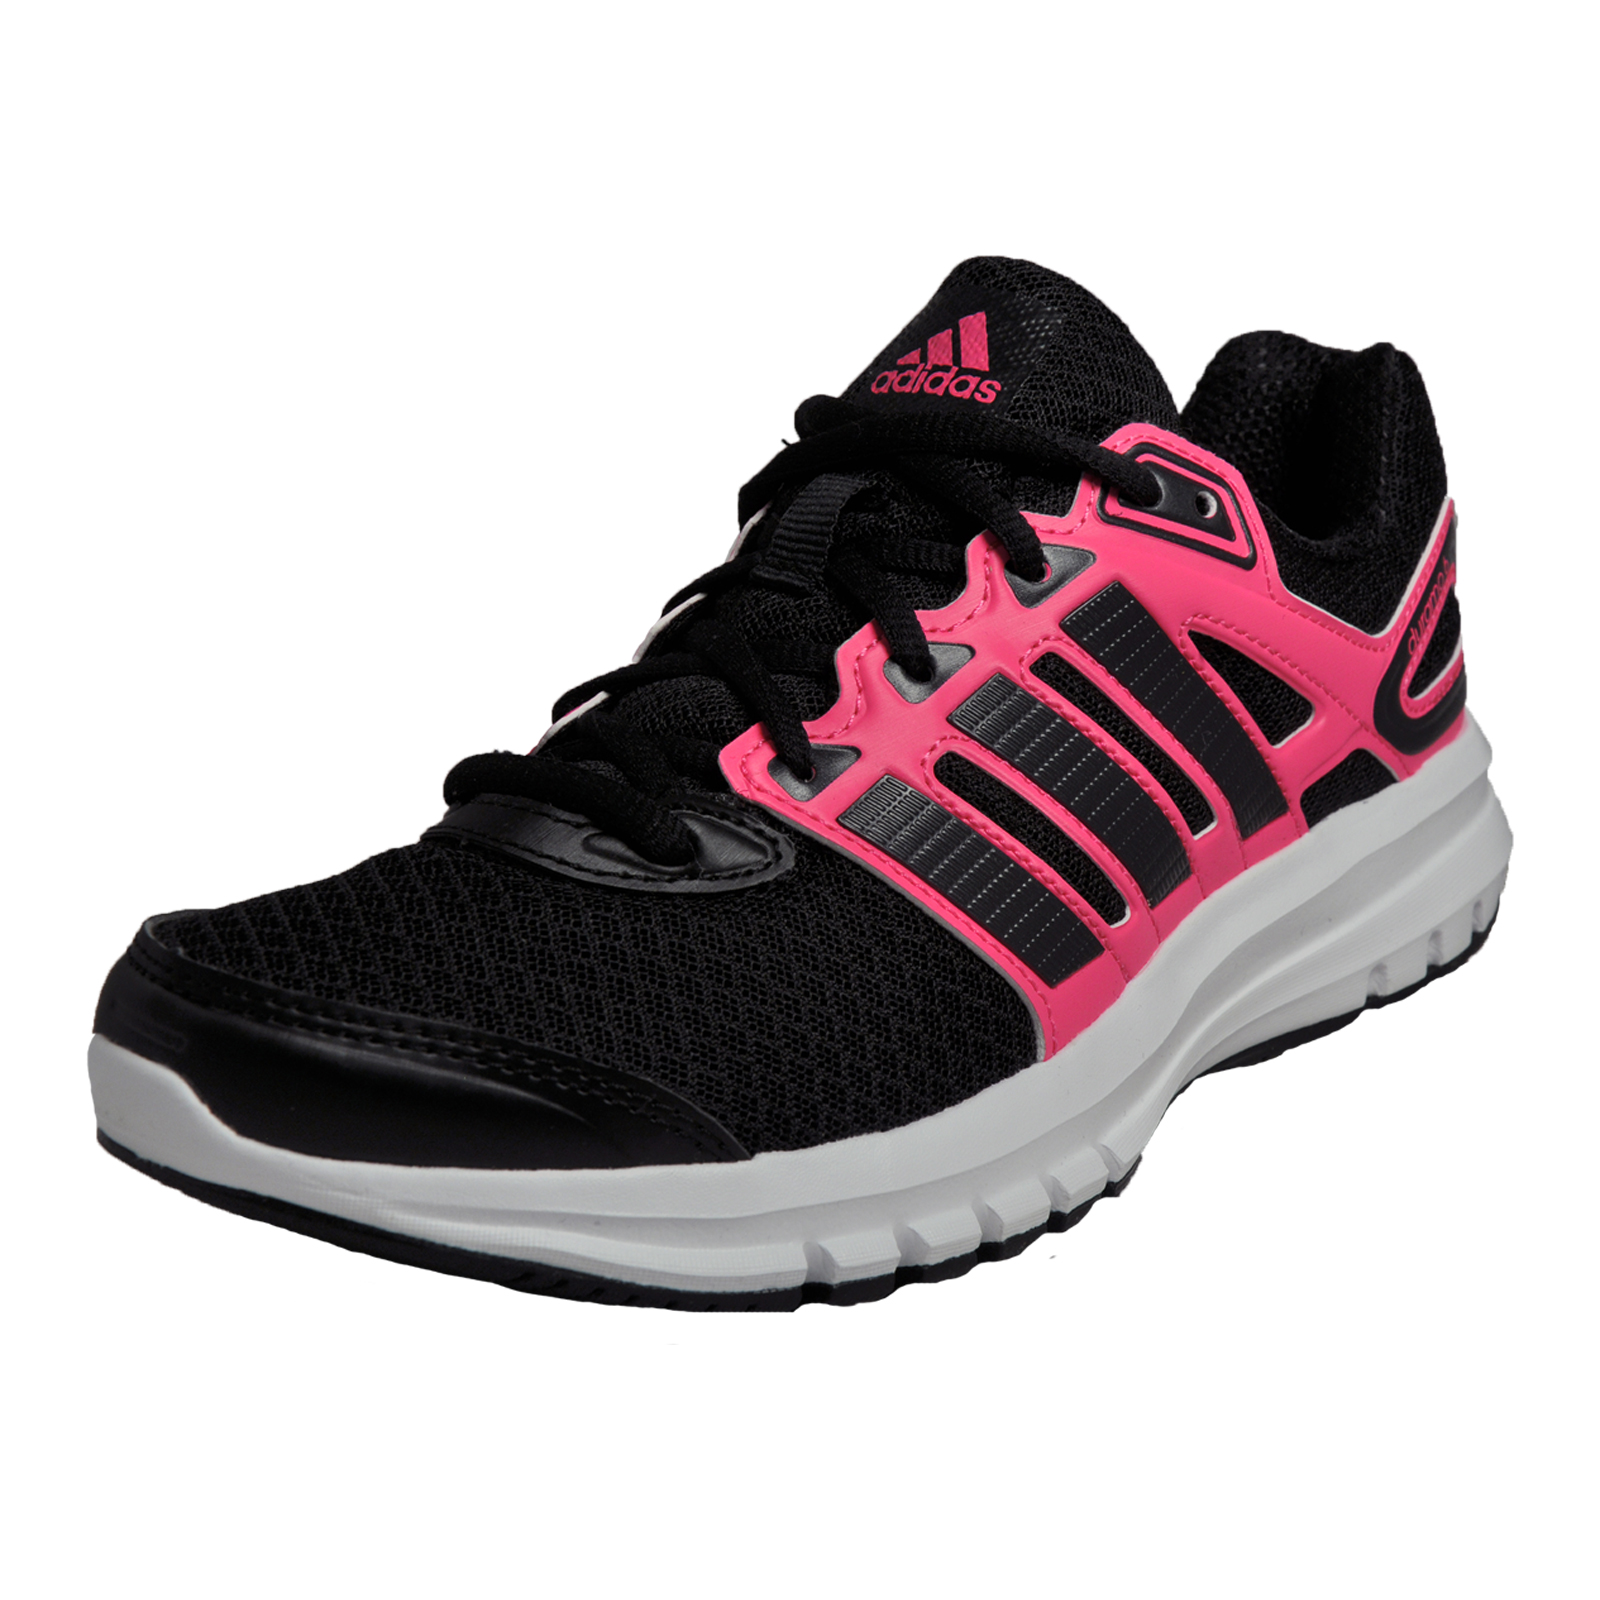 Adidas Duramo 6 Womens Running Shoes Fitness Trainers Gym Workout Trainers Fitness ca246a